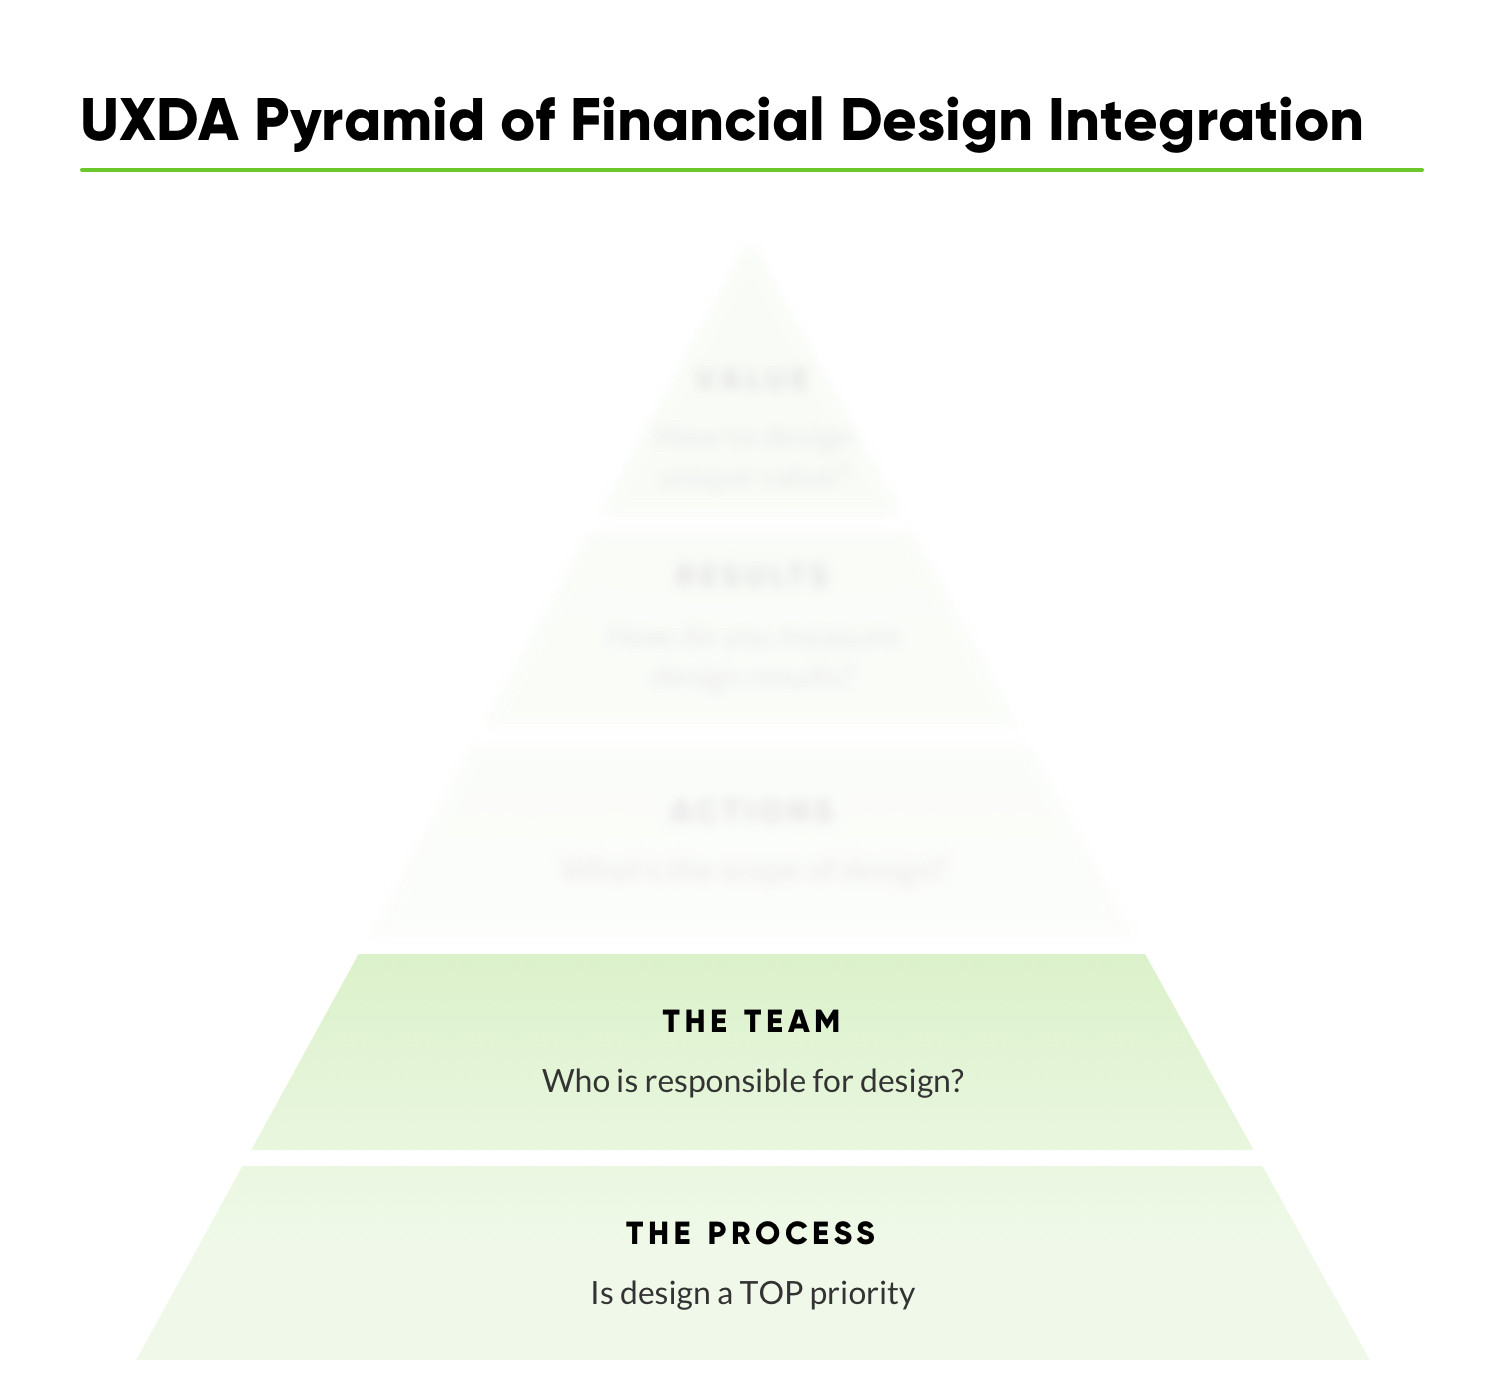 financial-ux-design-methodology-uxda-financial-design-integration-2-S.jpg